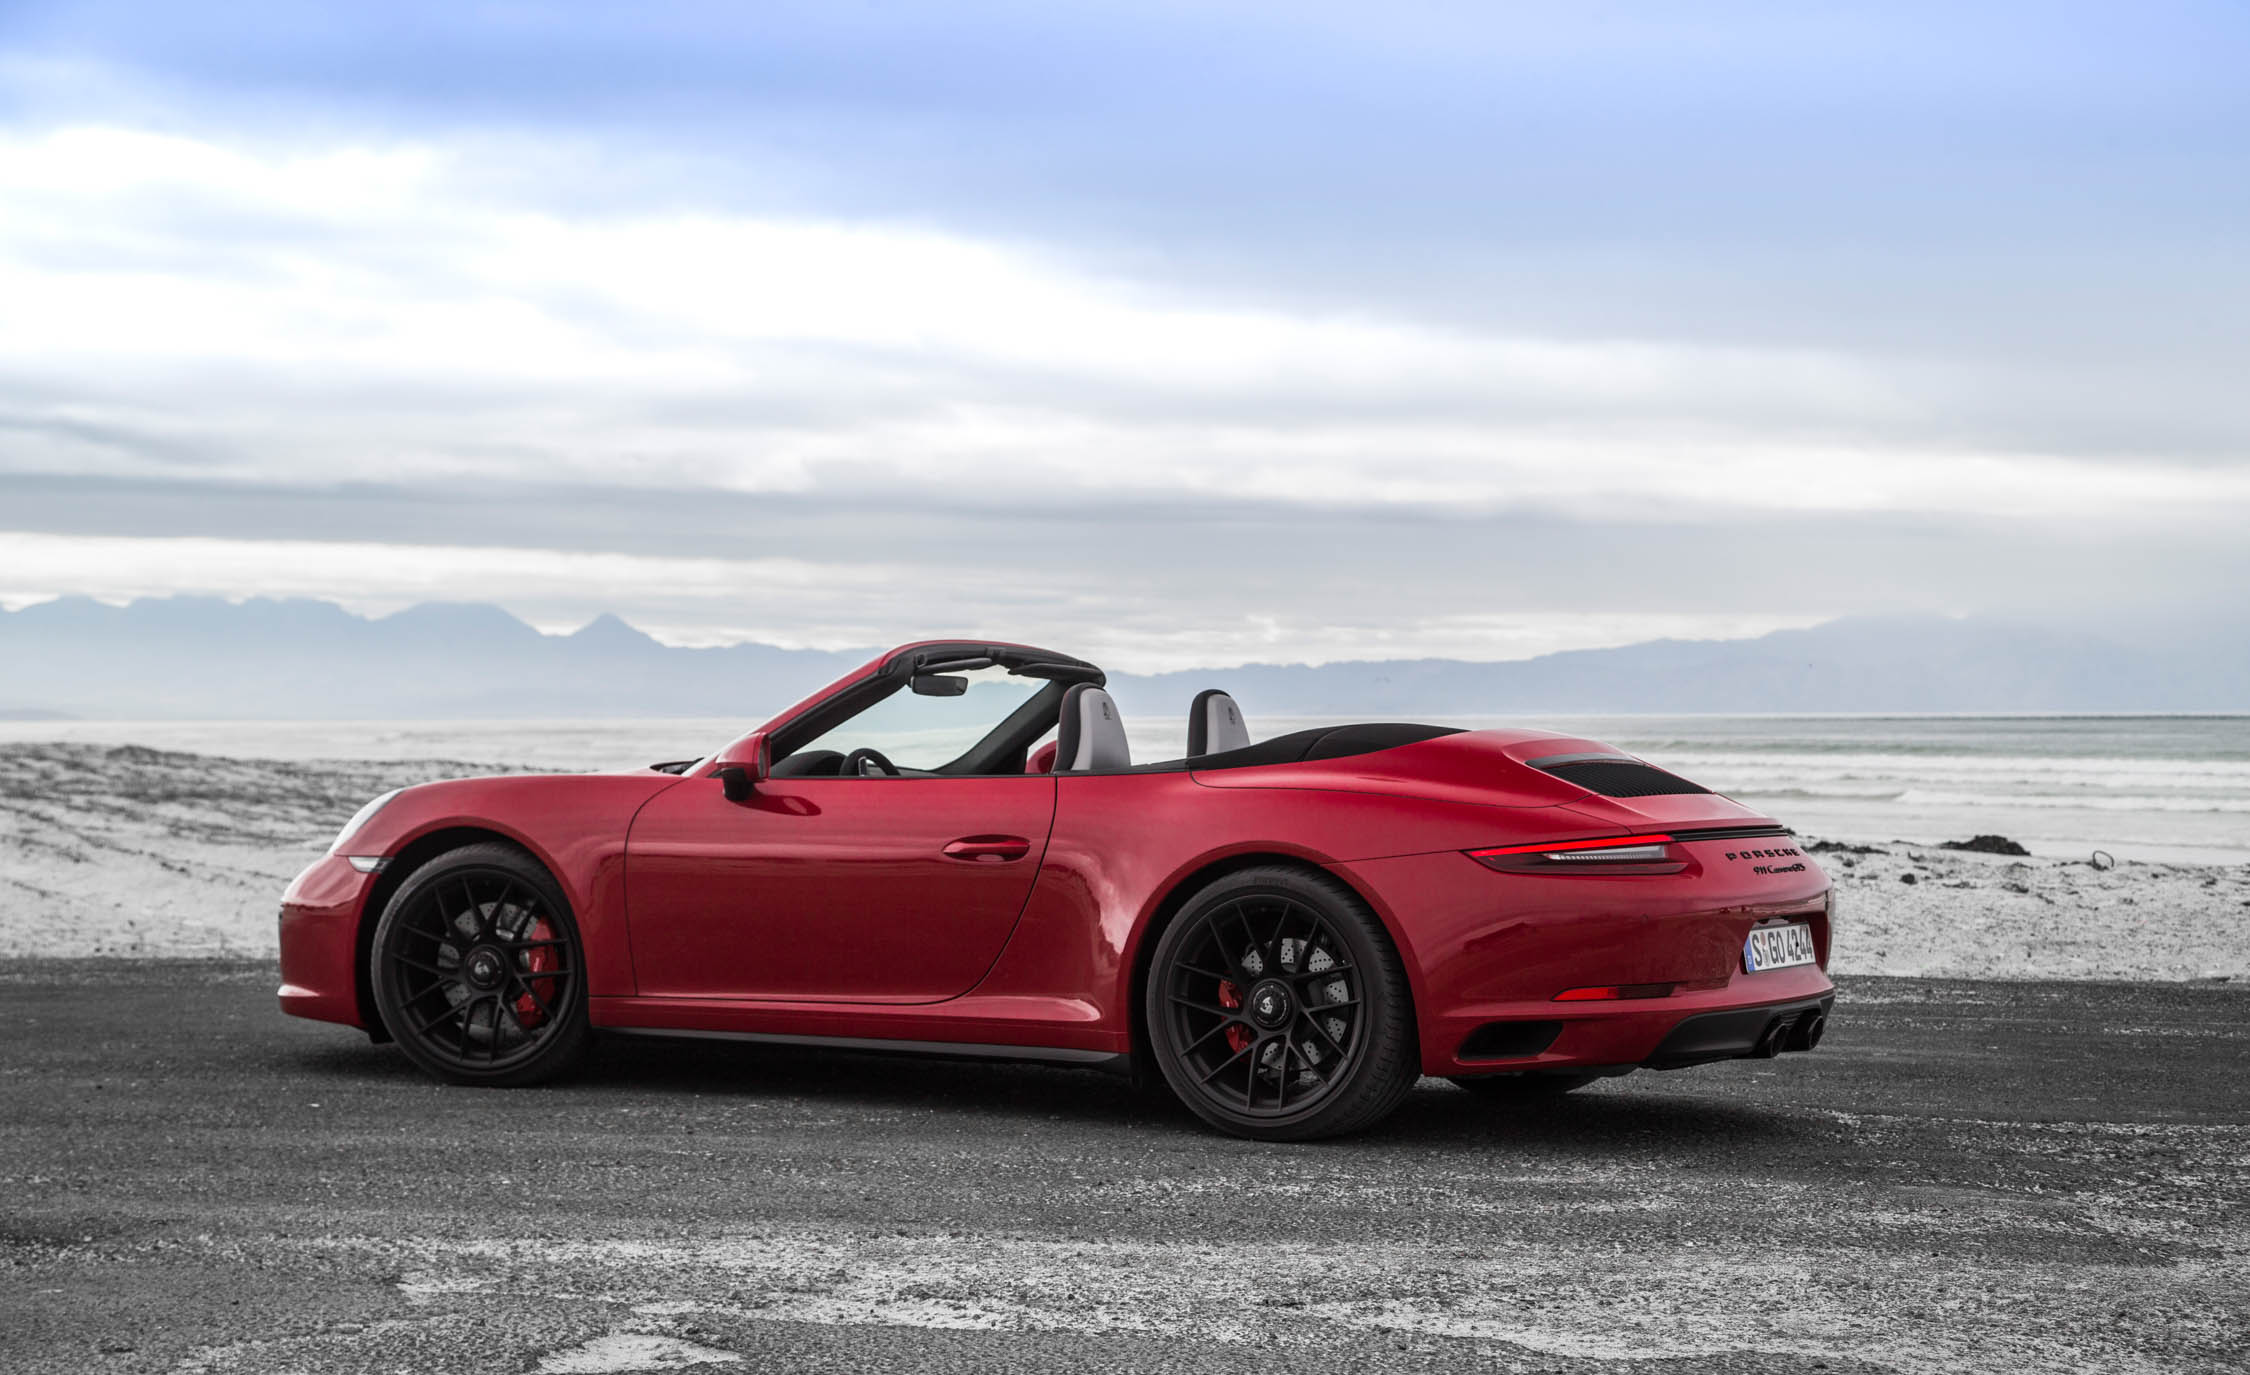 2017 Porsche 911 Carrera GTS Cabriolet Exterior Side (Photo 34 of 97)